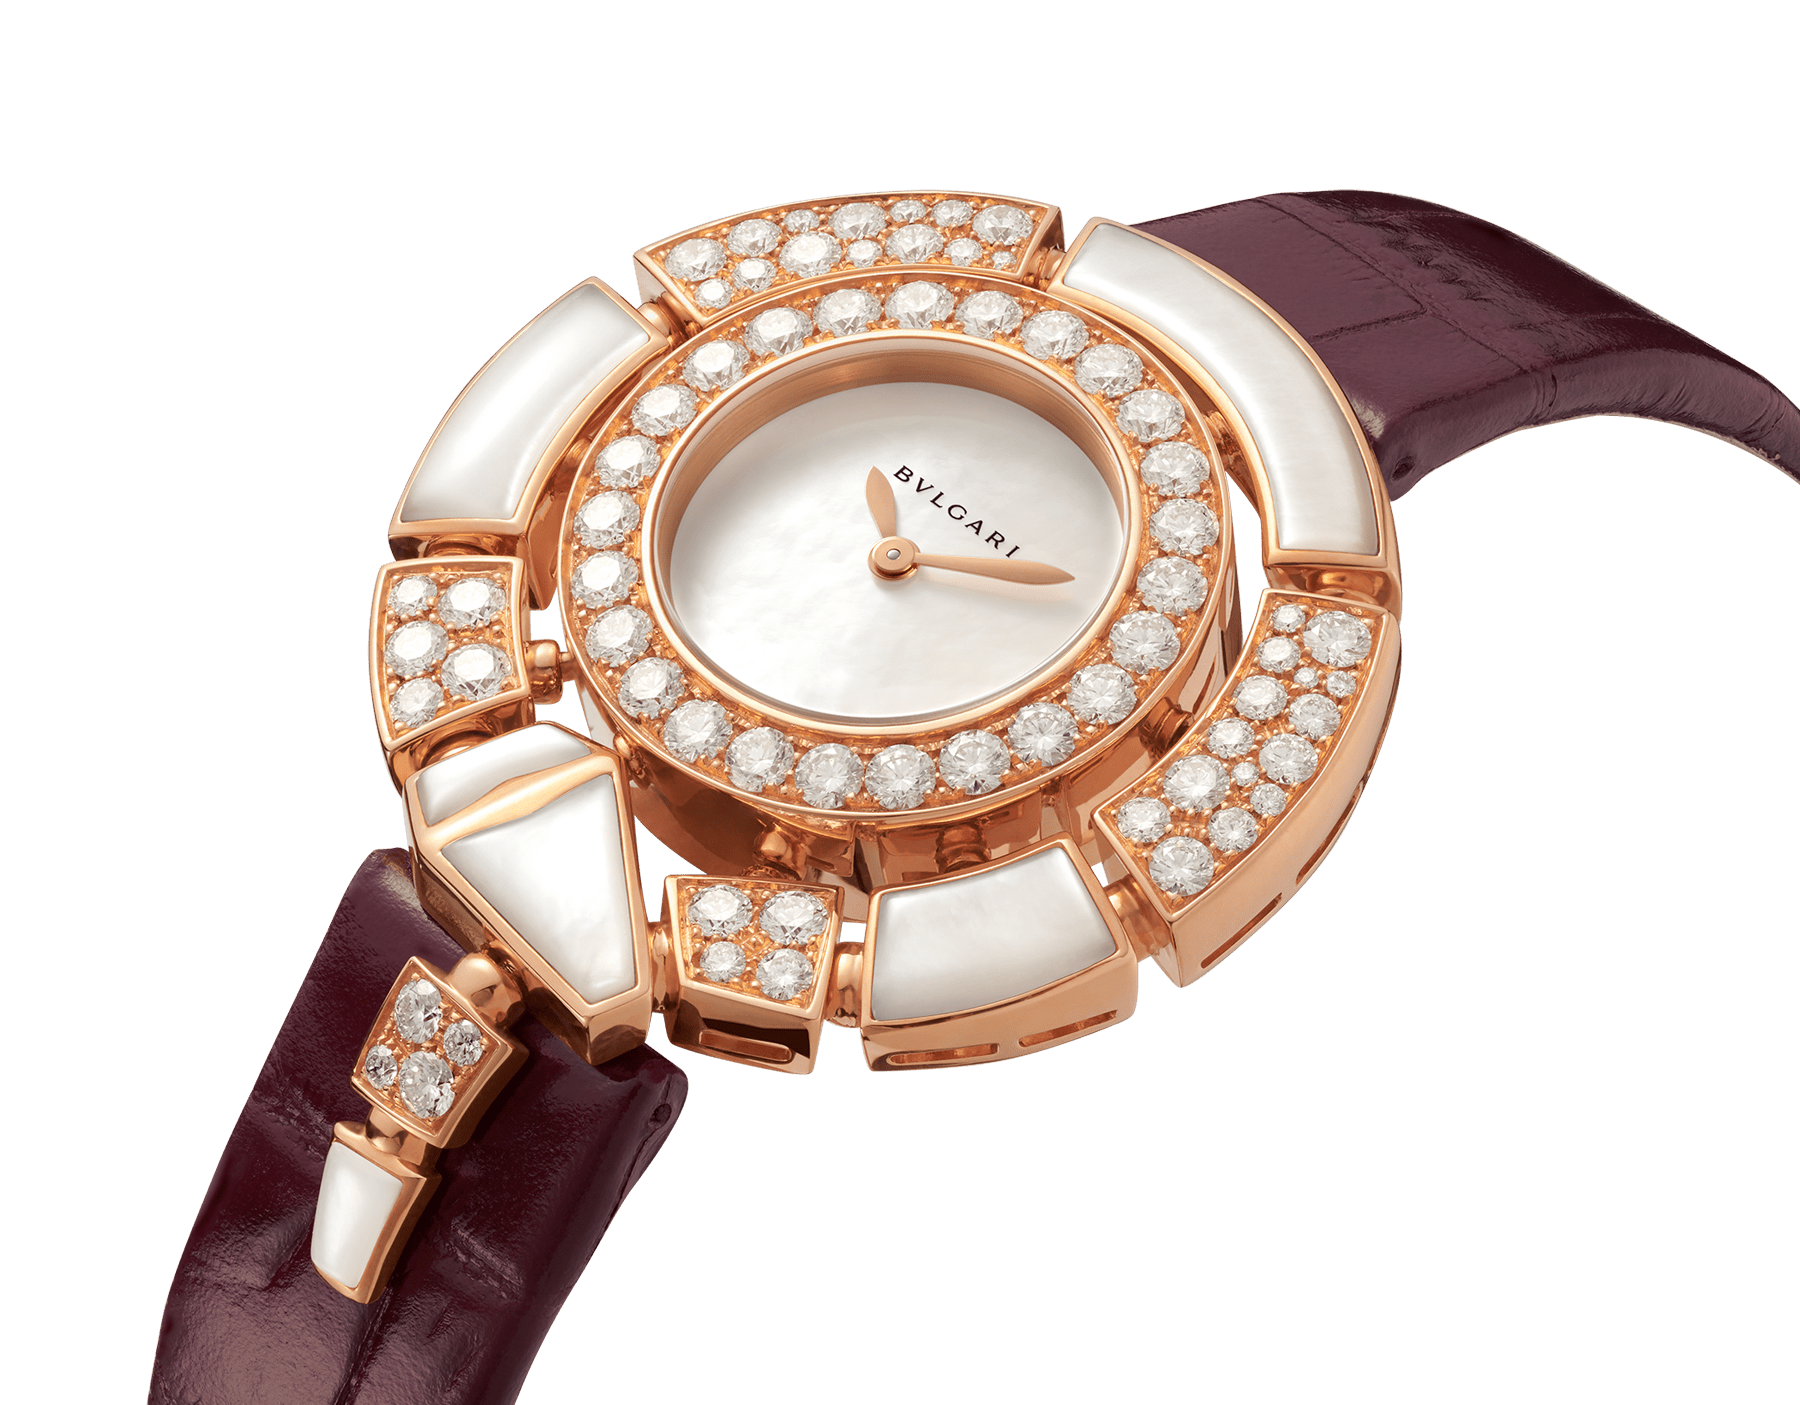 Serpenti Incantati watch with 18 kt rose gold case set with brilliant-cut diamonds and mother-of-pearl elements, mother-of-pearl dial and purple alligator bracelet 102872 image 2